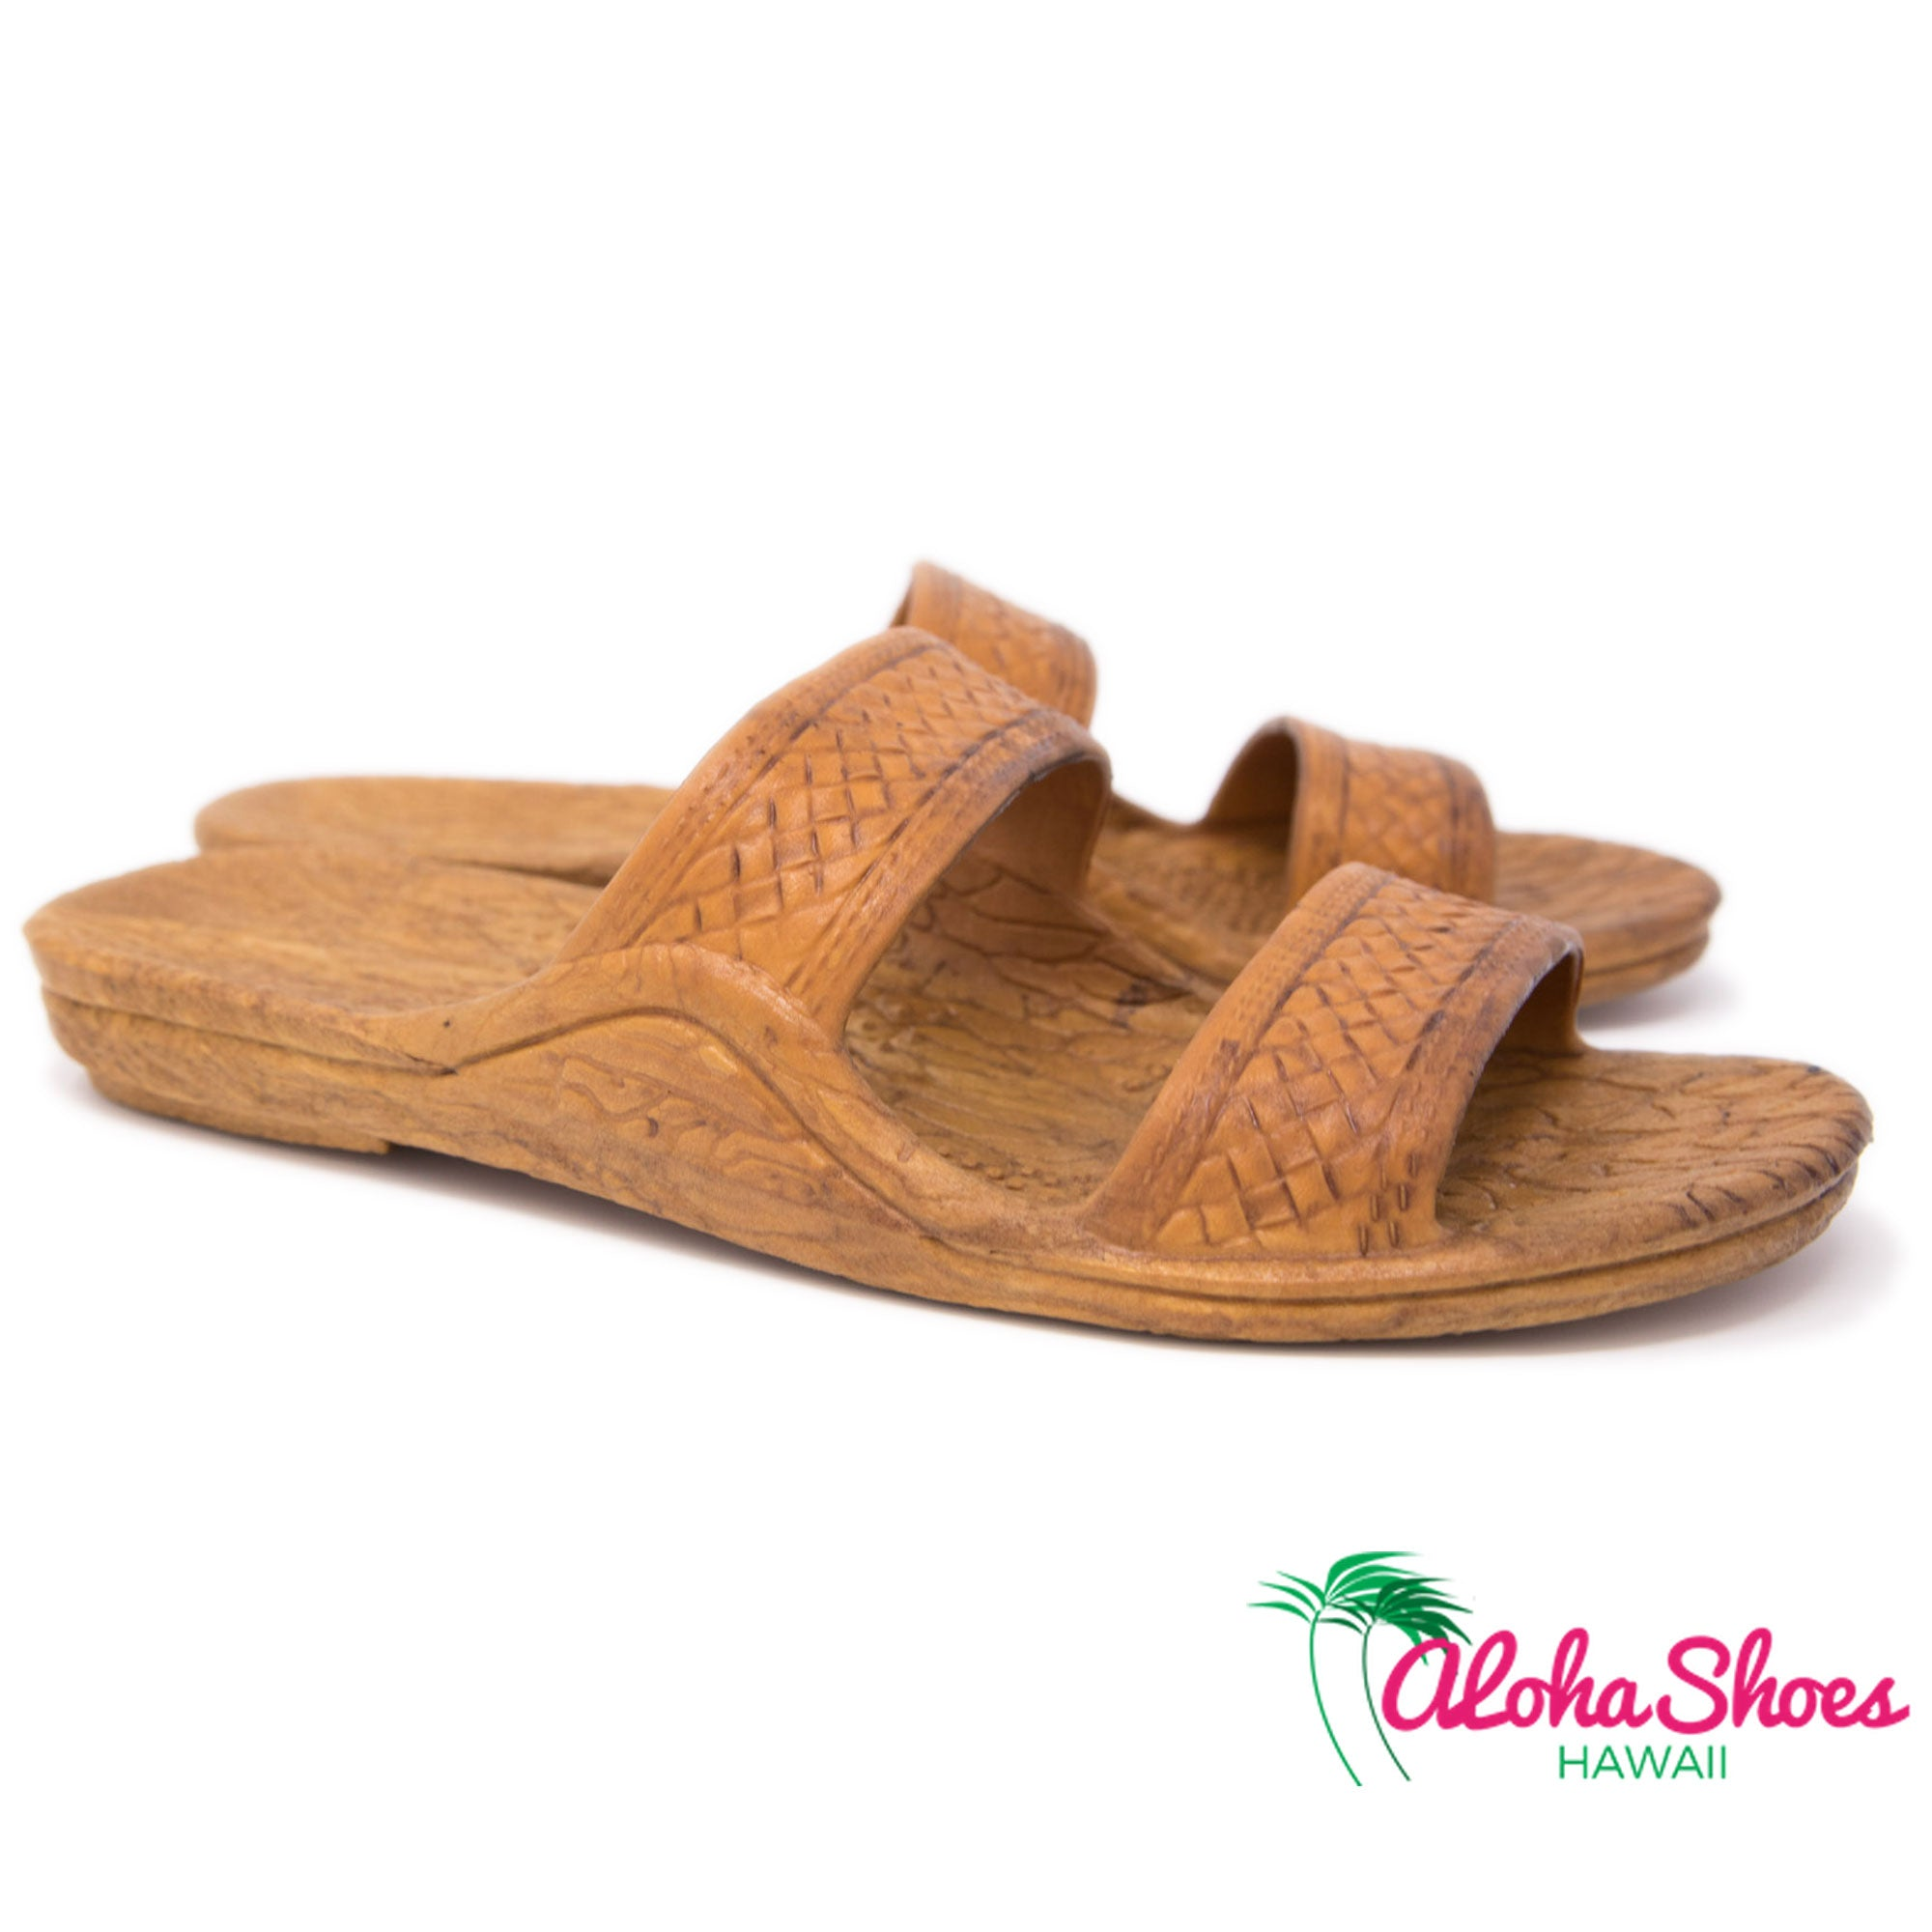 Pali Hawaii Jandals Light Brown Classics- AlohaShoes.com